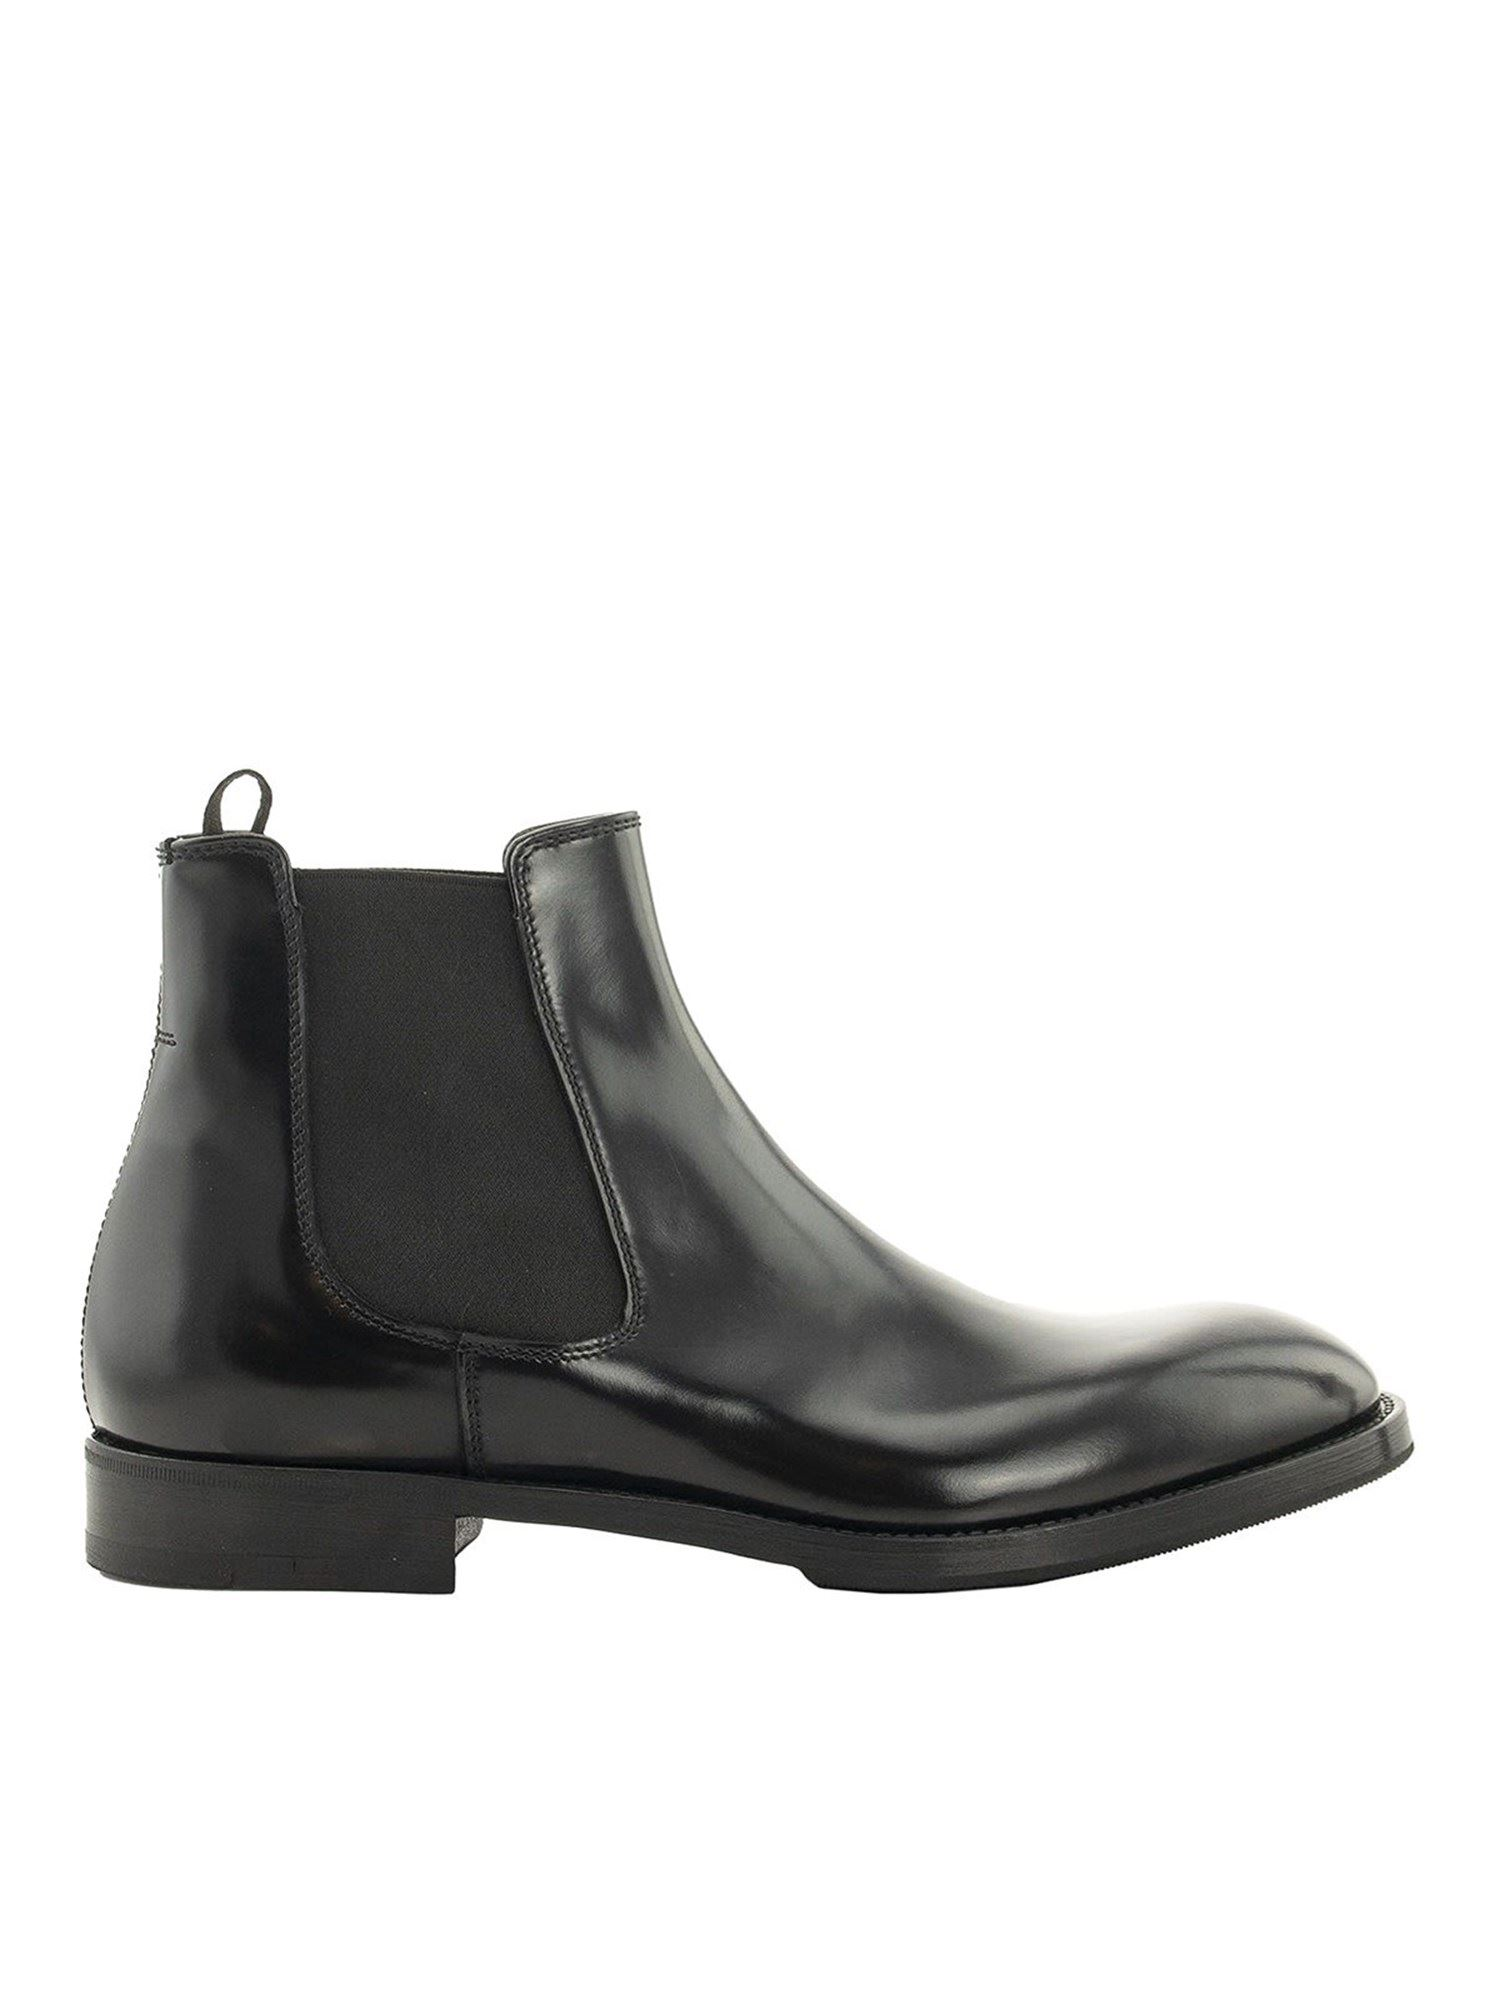 Premiata BRUSHED LEATHER ANKLE BOOTS IN BLACK